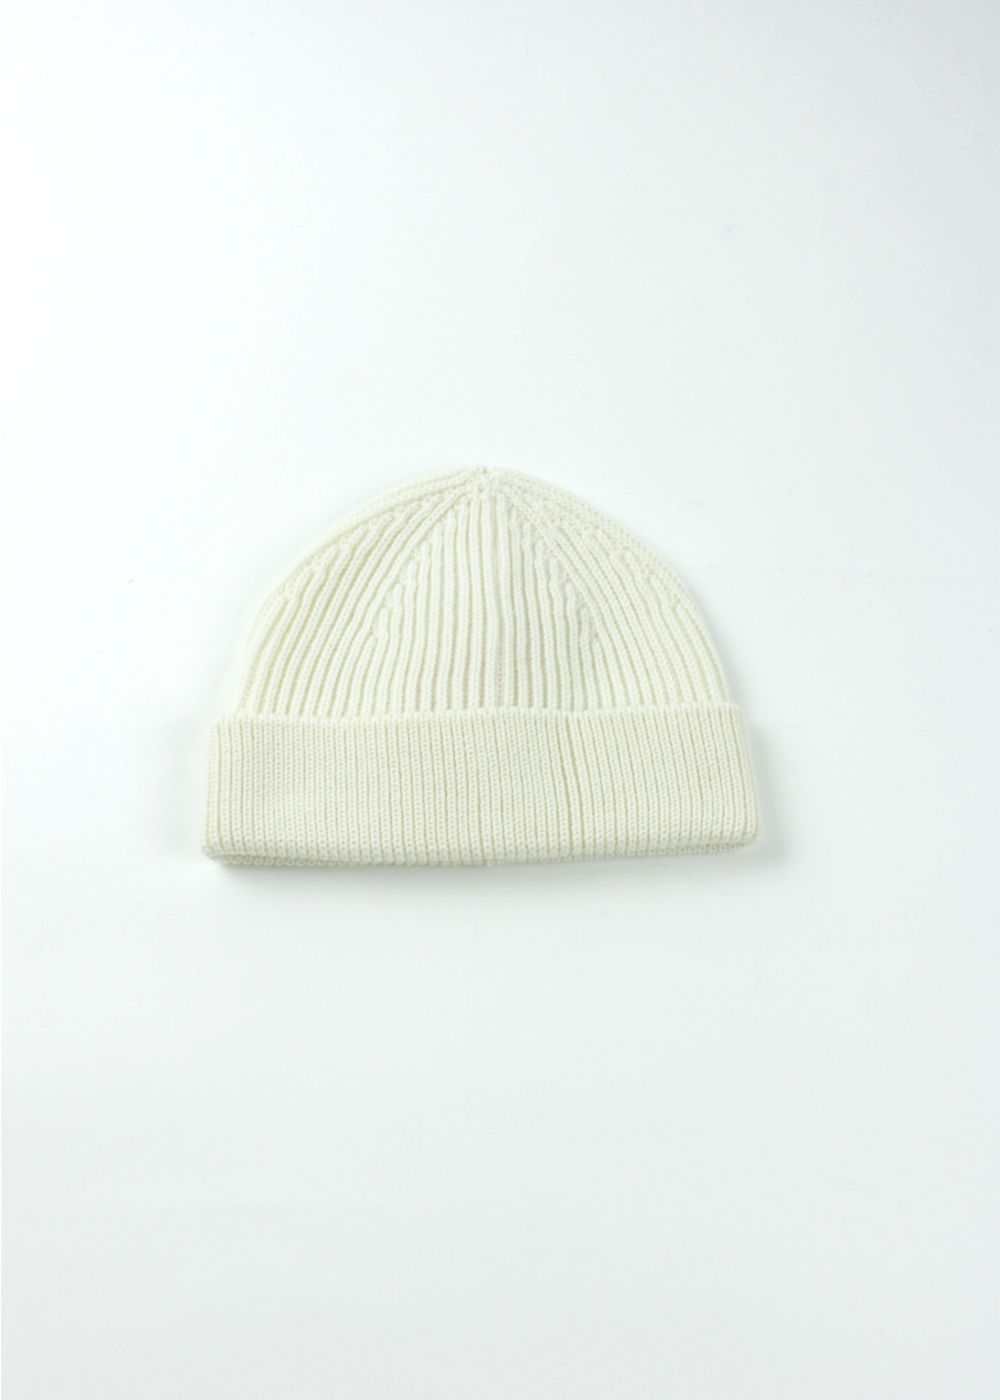 Andersen-Andersen-Beanie Medium-Off-White-01